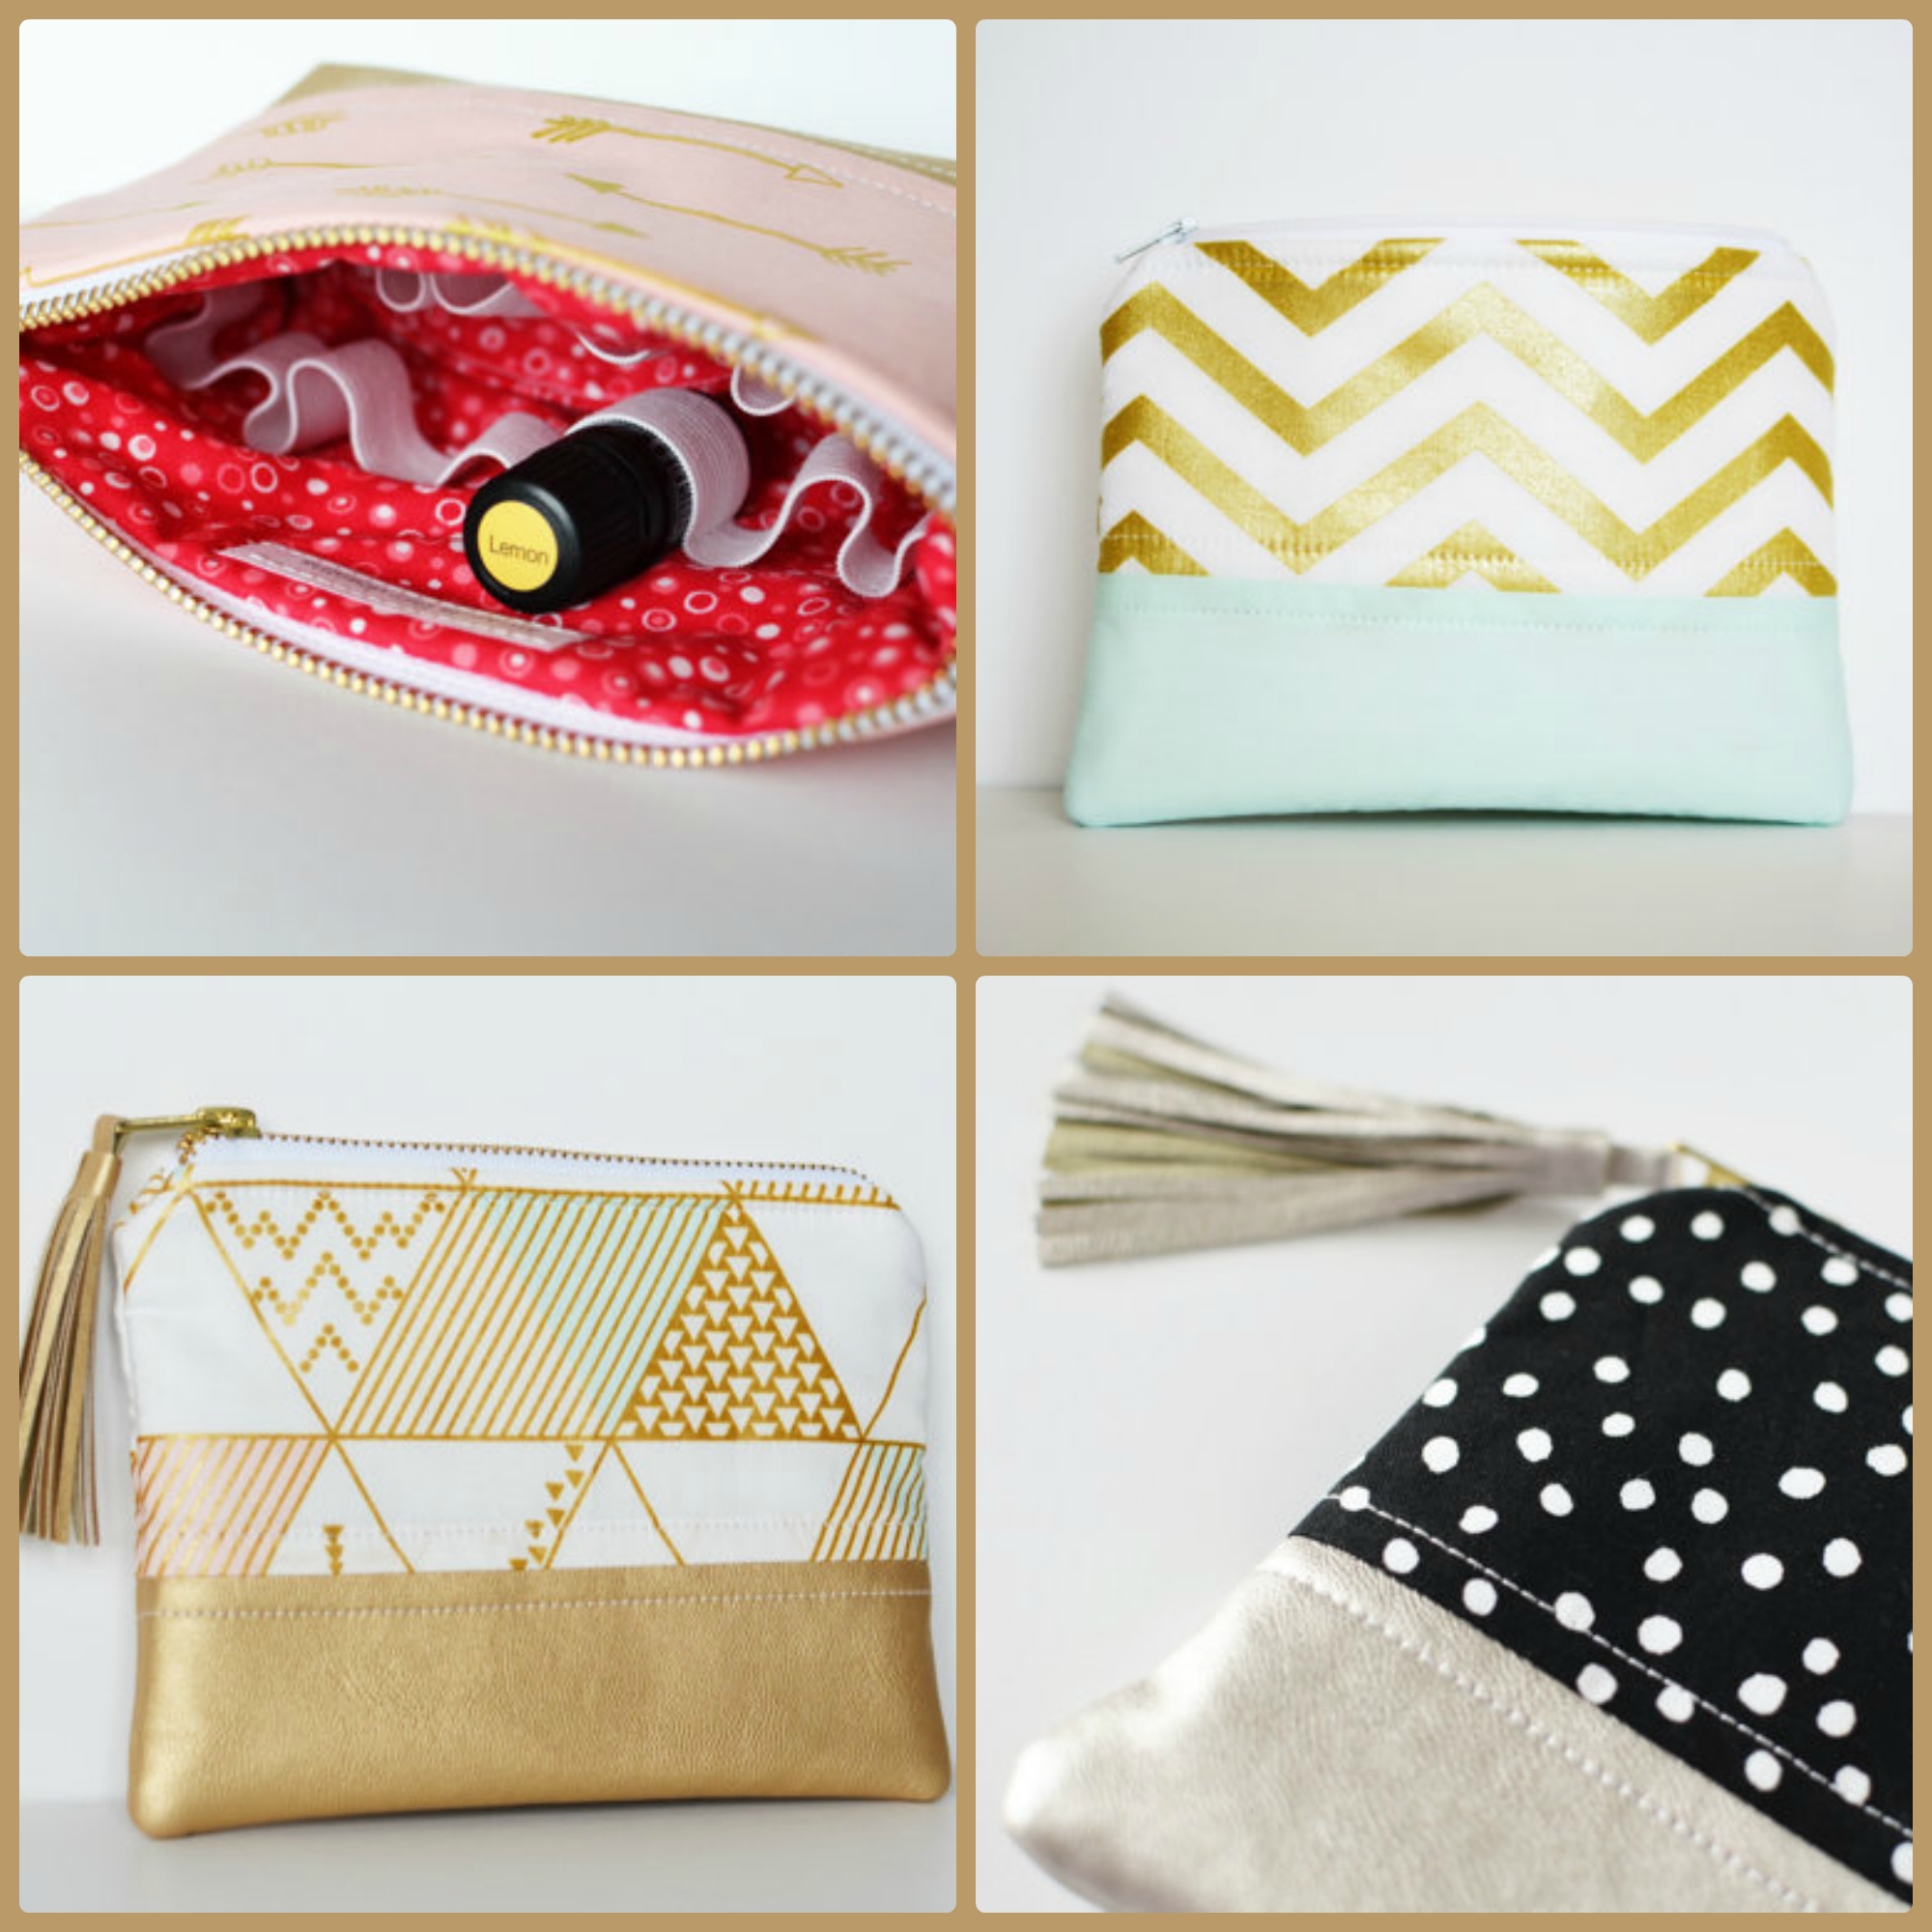 These chic and sassy essential oil bags are my FAVORITE! They are perfect for 5 ml bottles, 15 ml bottles, AND roller bottles! | RecipeswithEssentialOils.com